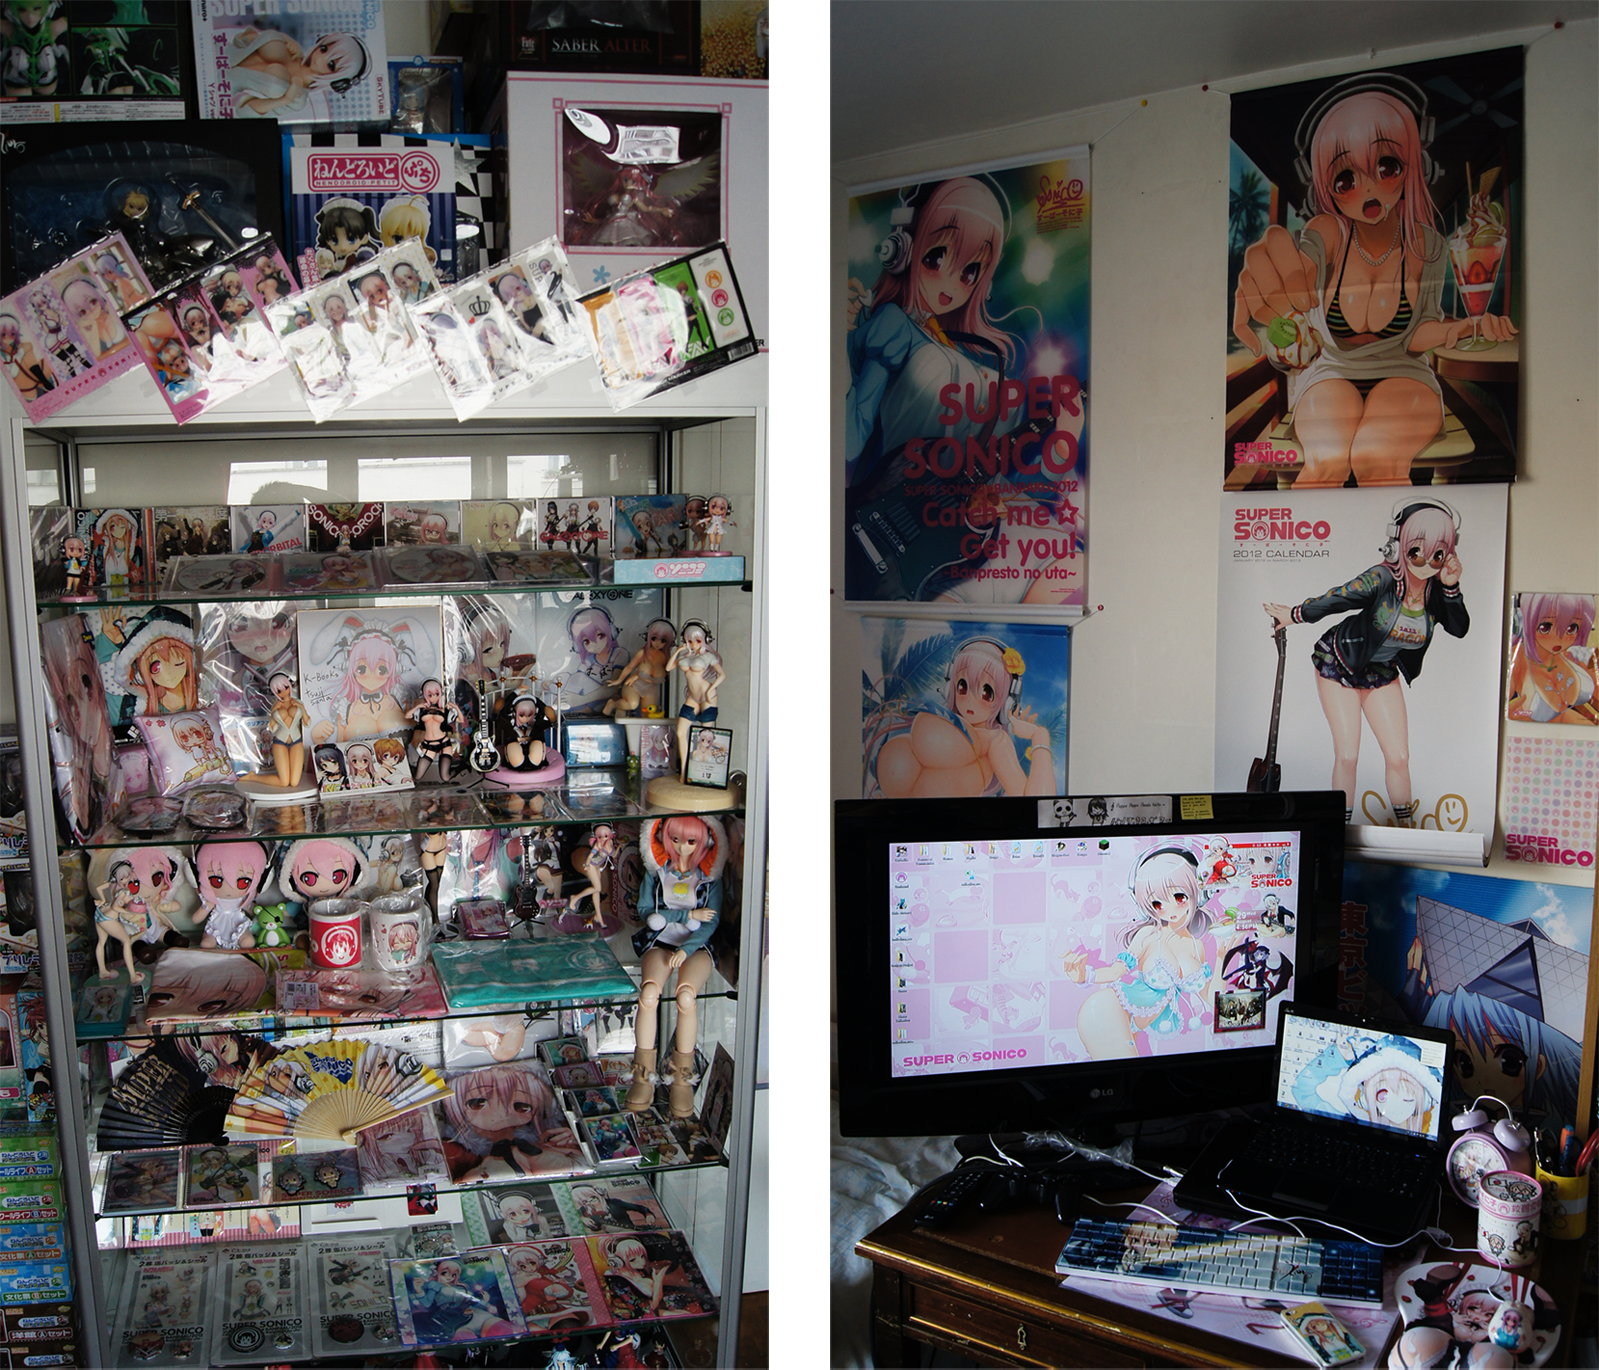 towel t-rex gift yamato wing mug banpresto hobby_japan azone album orchid_seed mousepad badge broccoli cospa folding_fan ichiban_kuji sticker native tapestry sonico cushion nitroplus oppai_mousepad mini_towel clear_file muffler dive bookmark hokusoh zenko cushion_cover s.o.f.t hobby_stock alpha_max kondou_takayuki nitro_super_sonic rubber_strap g.o. mota tanaka_masanori card_sleeve eco! vmf50 santa_tsuji choco*ochi super_sonico_collection_x_mota binder pillow_case skytube armik empty d4_series 2% jyojyo card_box deck_case avex eye_mask ryuichi obitsu_plastic_manufacturing sonicomi creators'_labo fujimi_suzu medal_keyholder georide daiichi_uchuu_sokudo watanuki_fuuri valdia_japan_co.